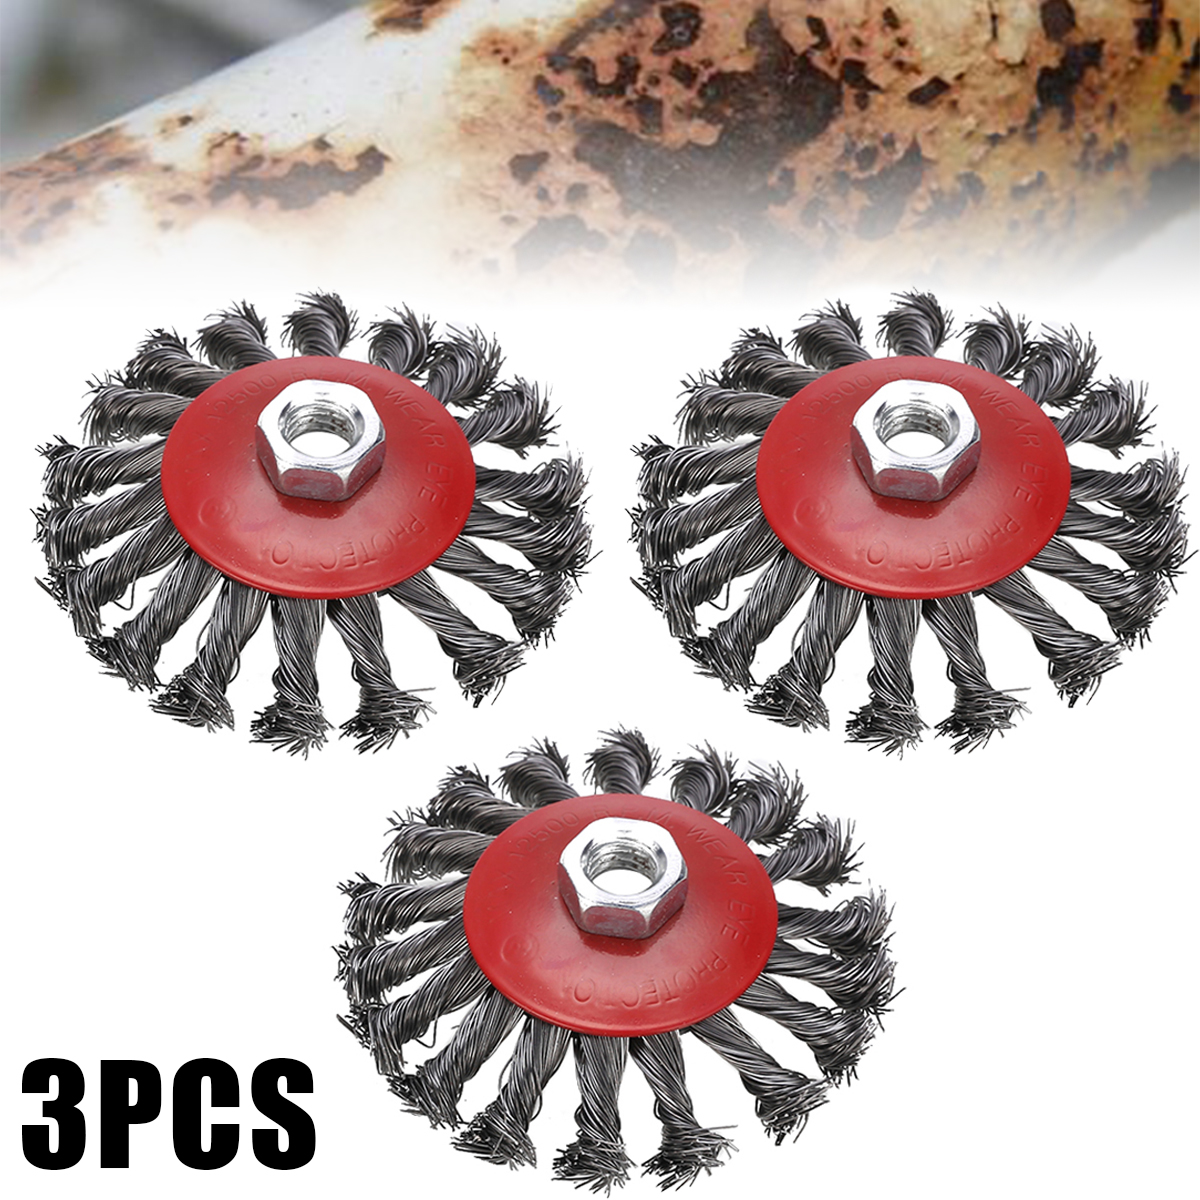 3pcs Mayitr Rotary Strong Metals Twist Knot Wire Wheel Cup Brush Set Kit 115mm M14 Angle Grinder Abrasive Tools